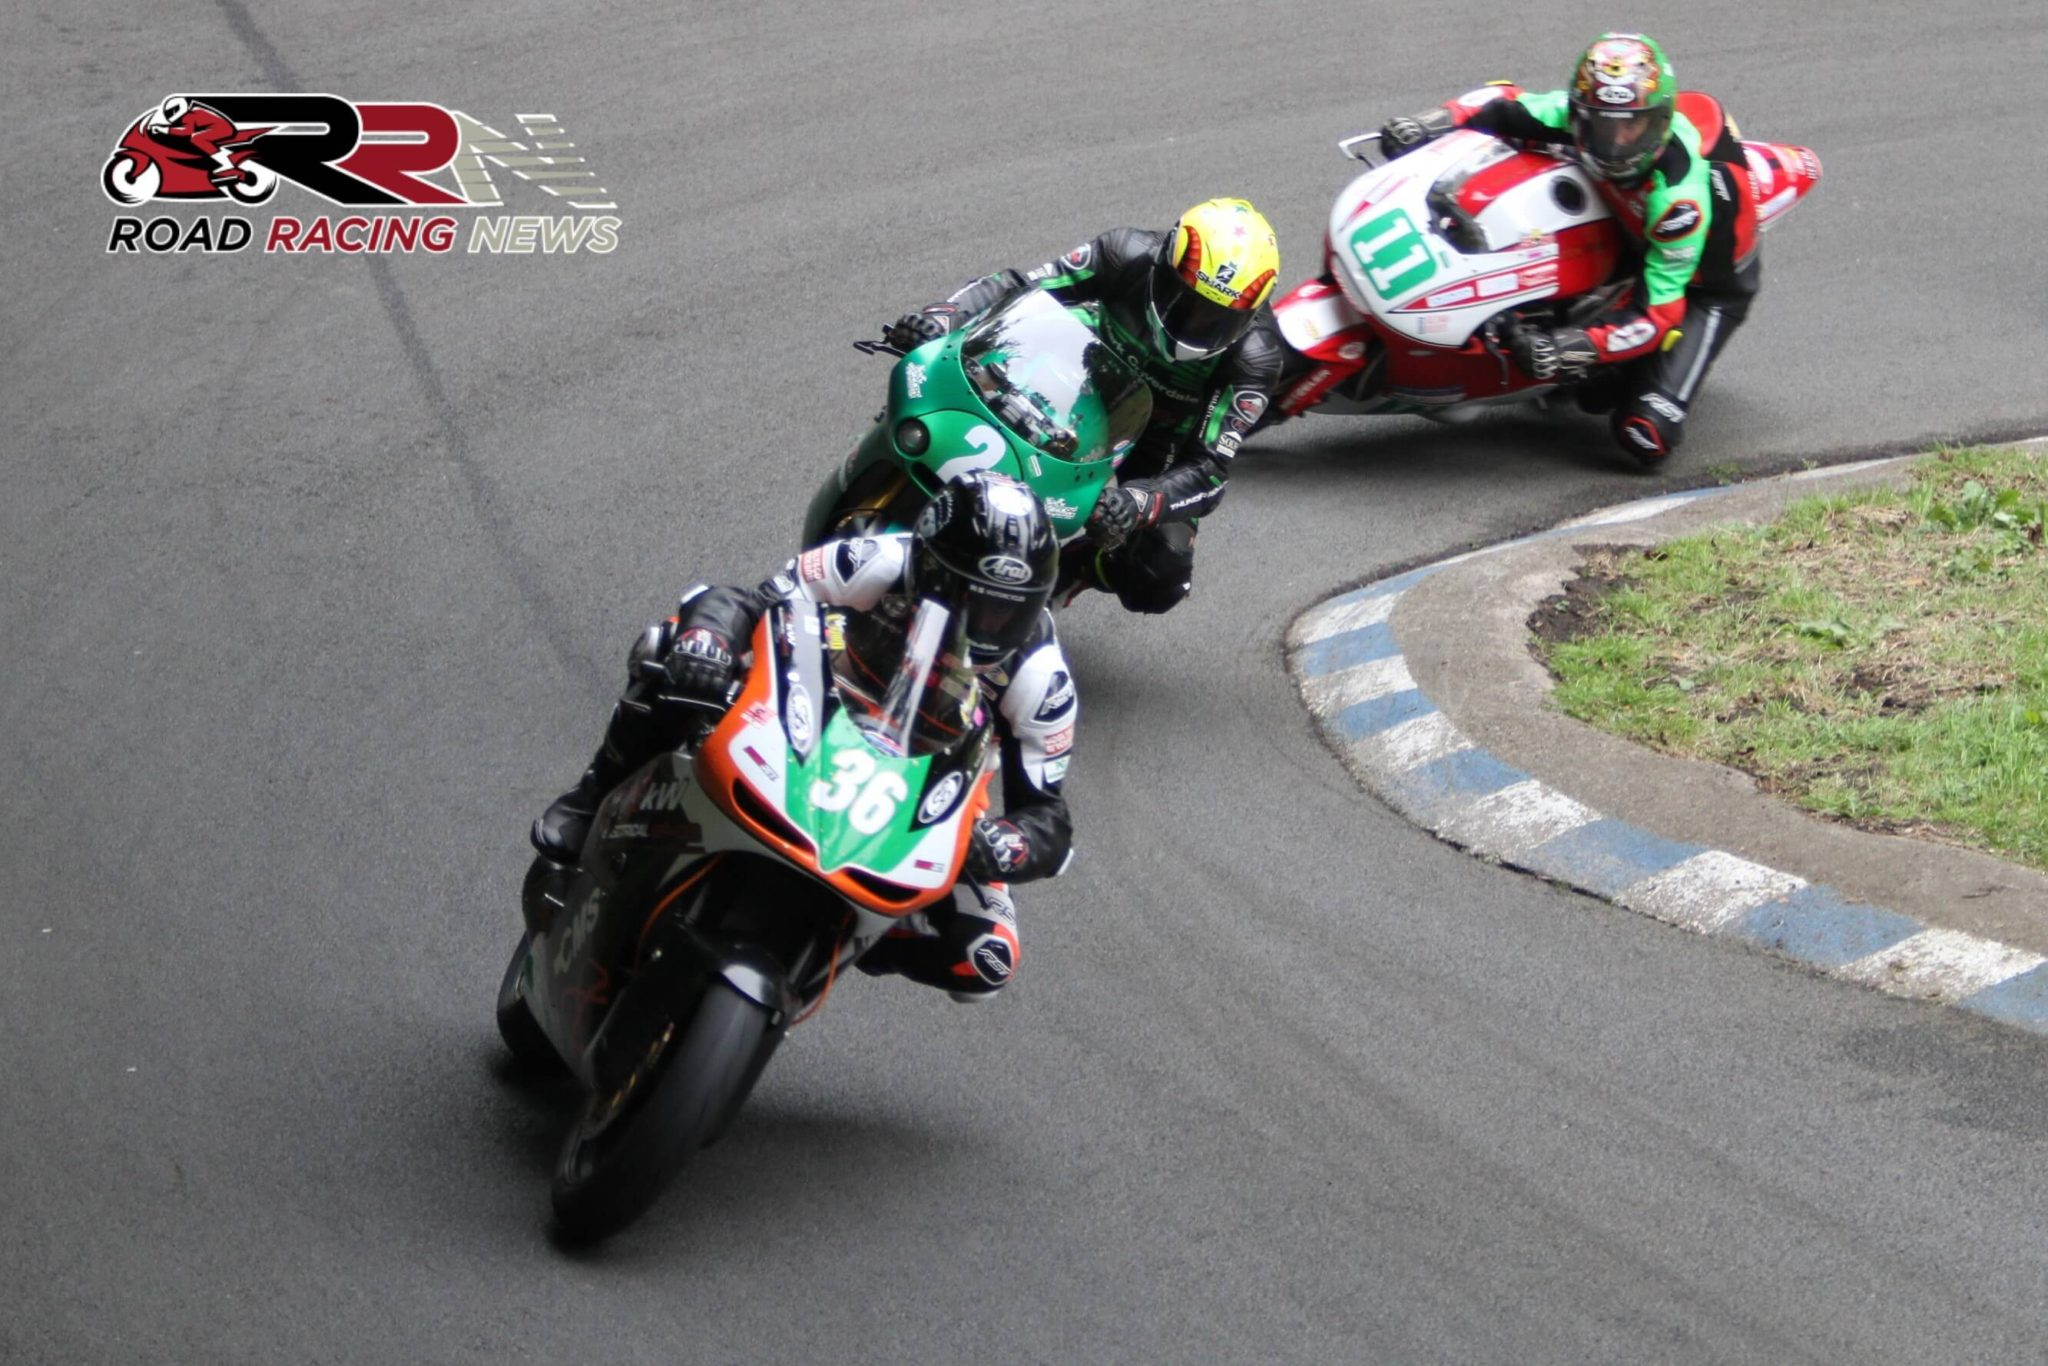 Barry Sheene Classic Moved Back A Week Till 26th-27th June